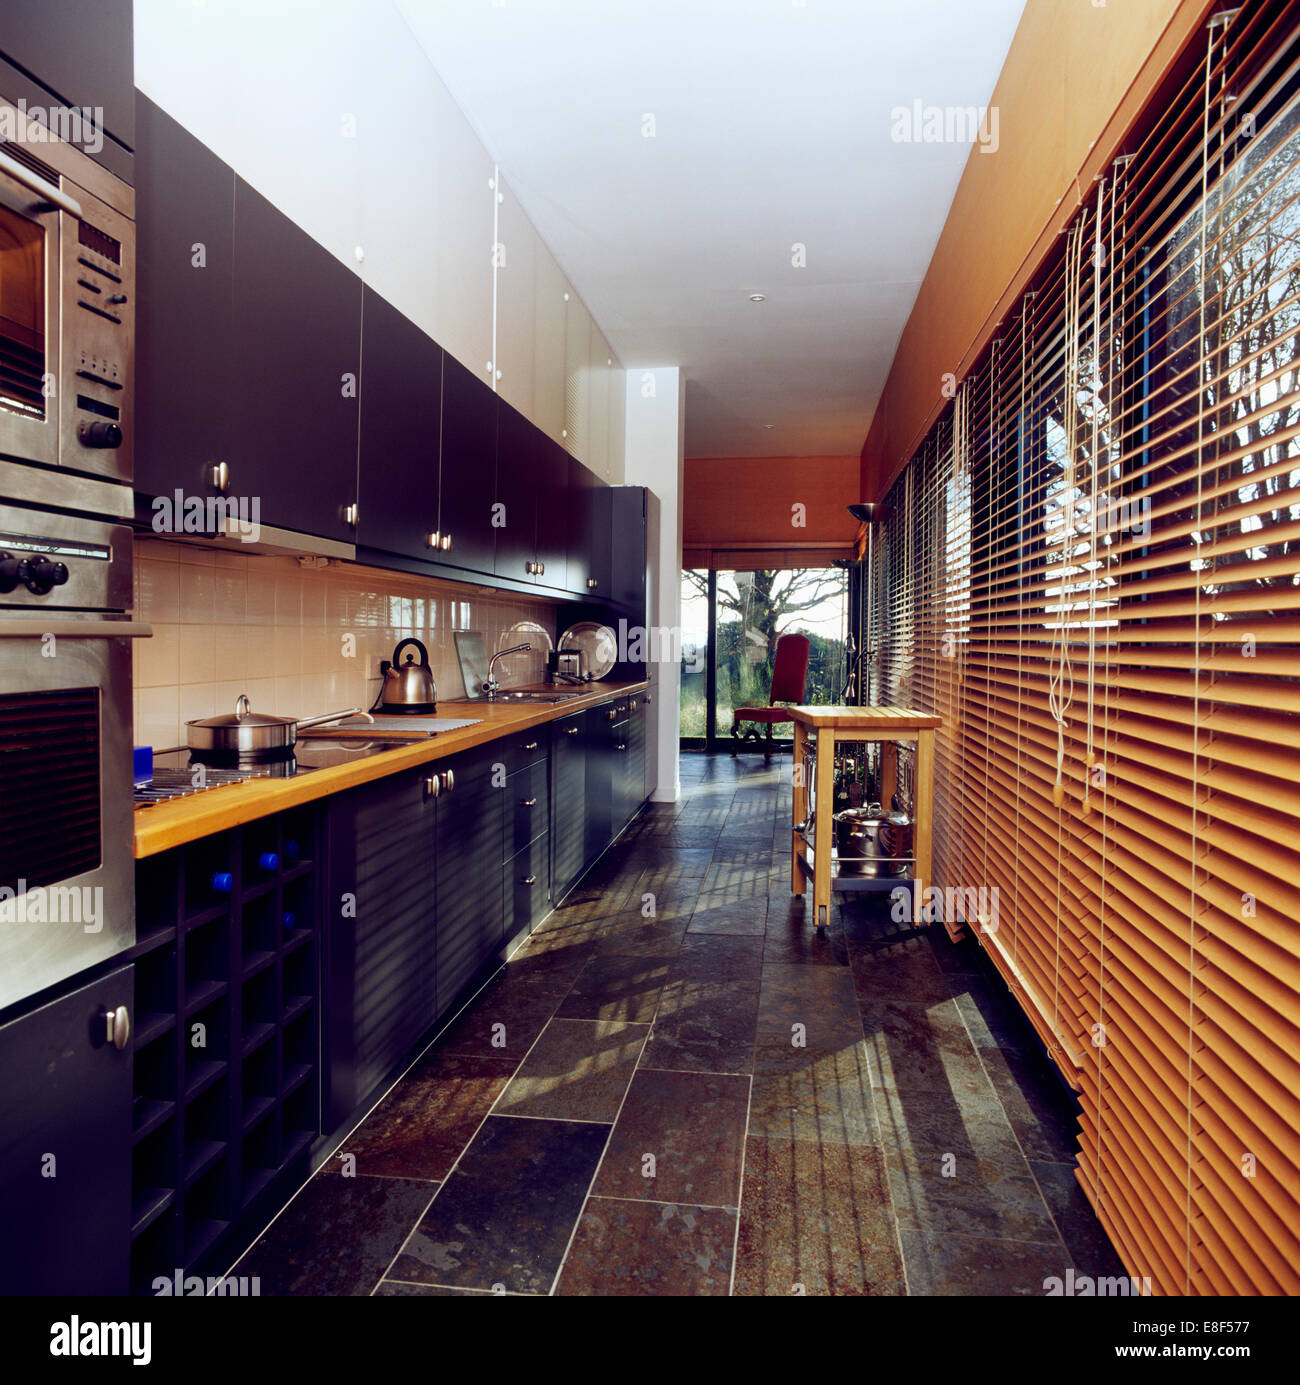 slate floor kitchen kidkraft toy and wooden venetian blinds in modern galley with worktops on black units